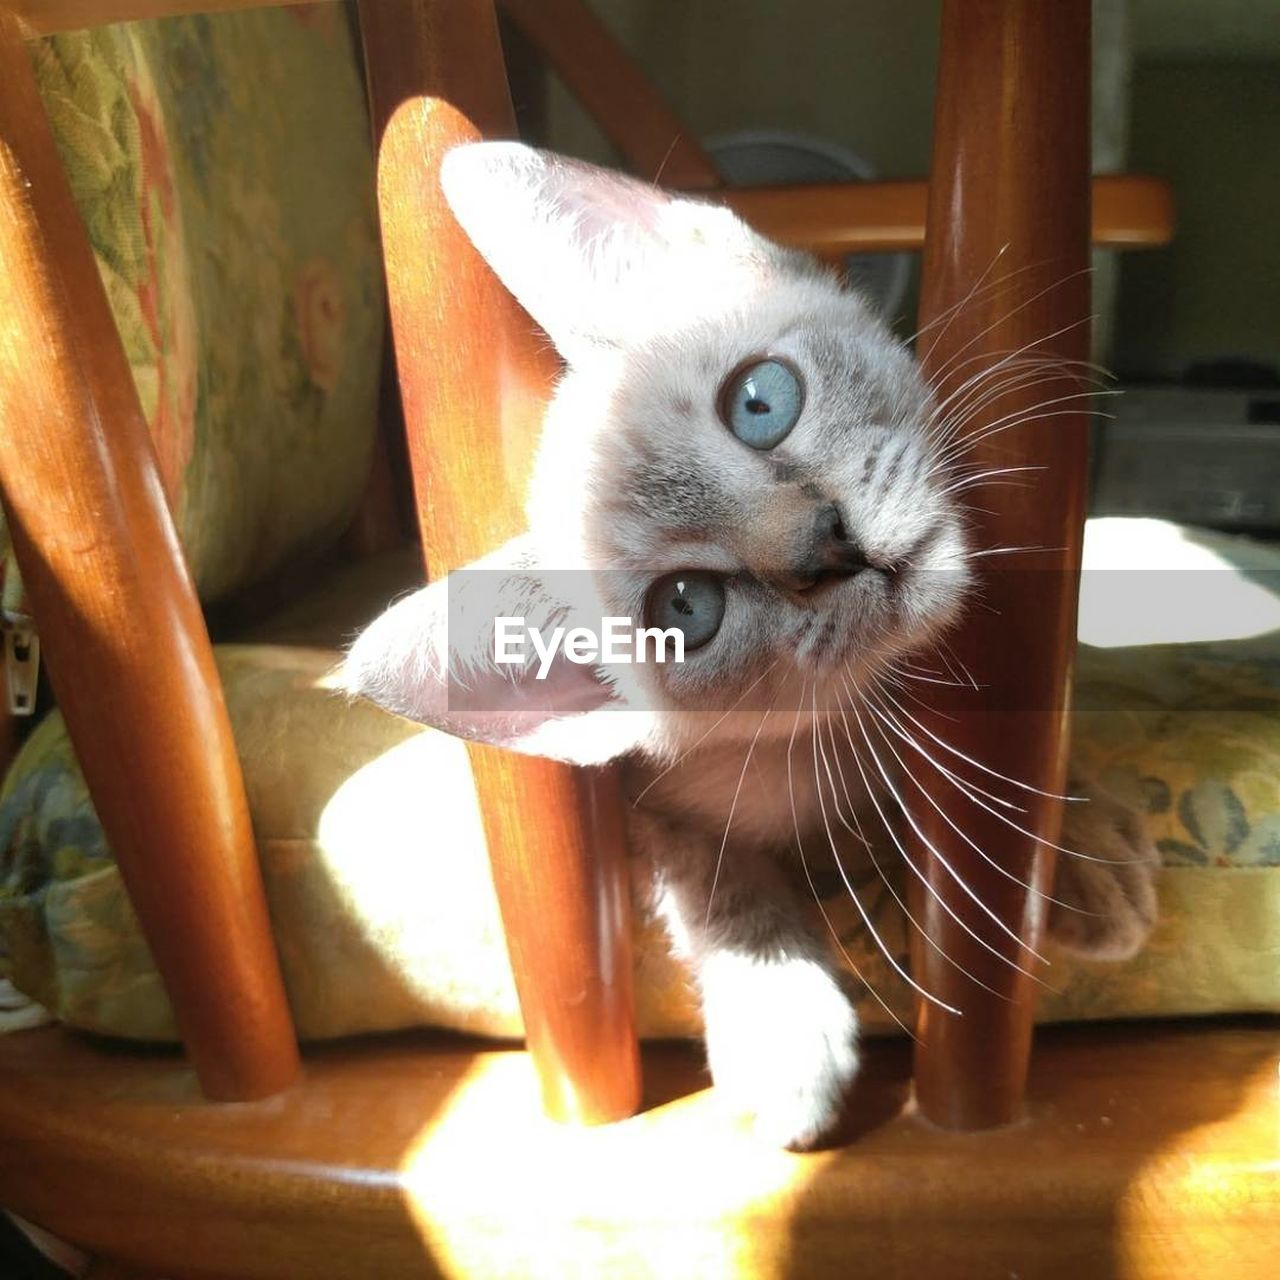 domestic cat, pets, domestic animals, animal themes, one animal, feline, mammal, whisker, looking at camera, portrait, no people, day, indoors, sunlight, close-up, kitten